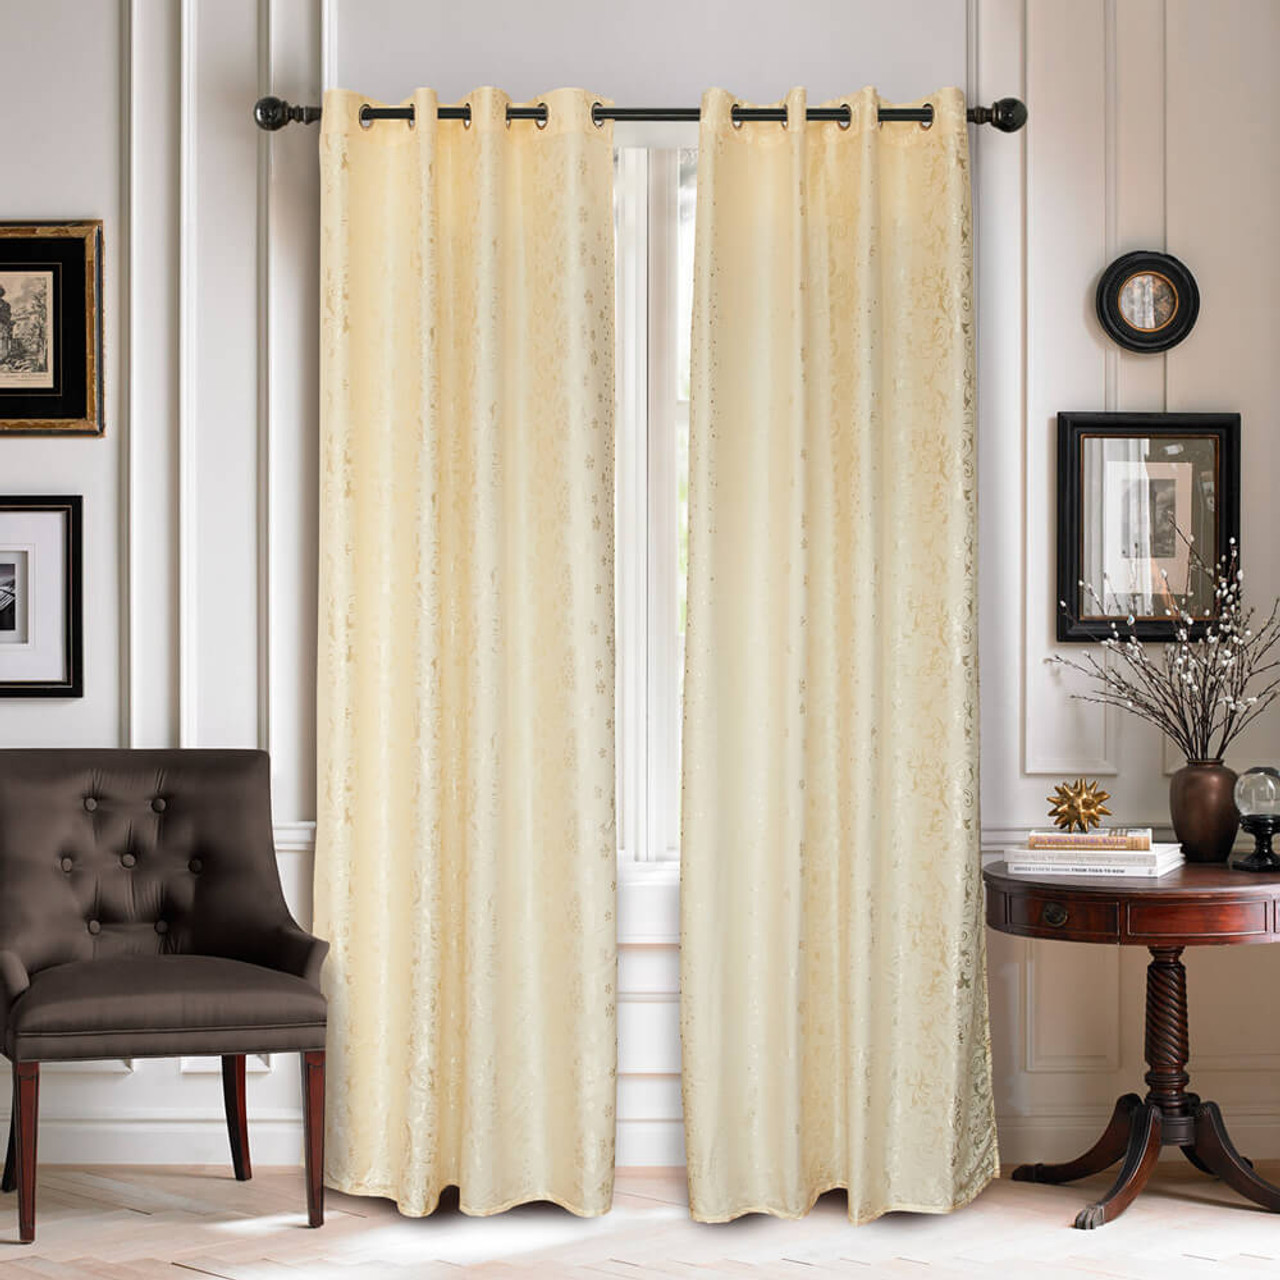 Curtain Panel Semi-Blackout Drapes, DMC716 Dolce Mela Ambassador Window Treatments